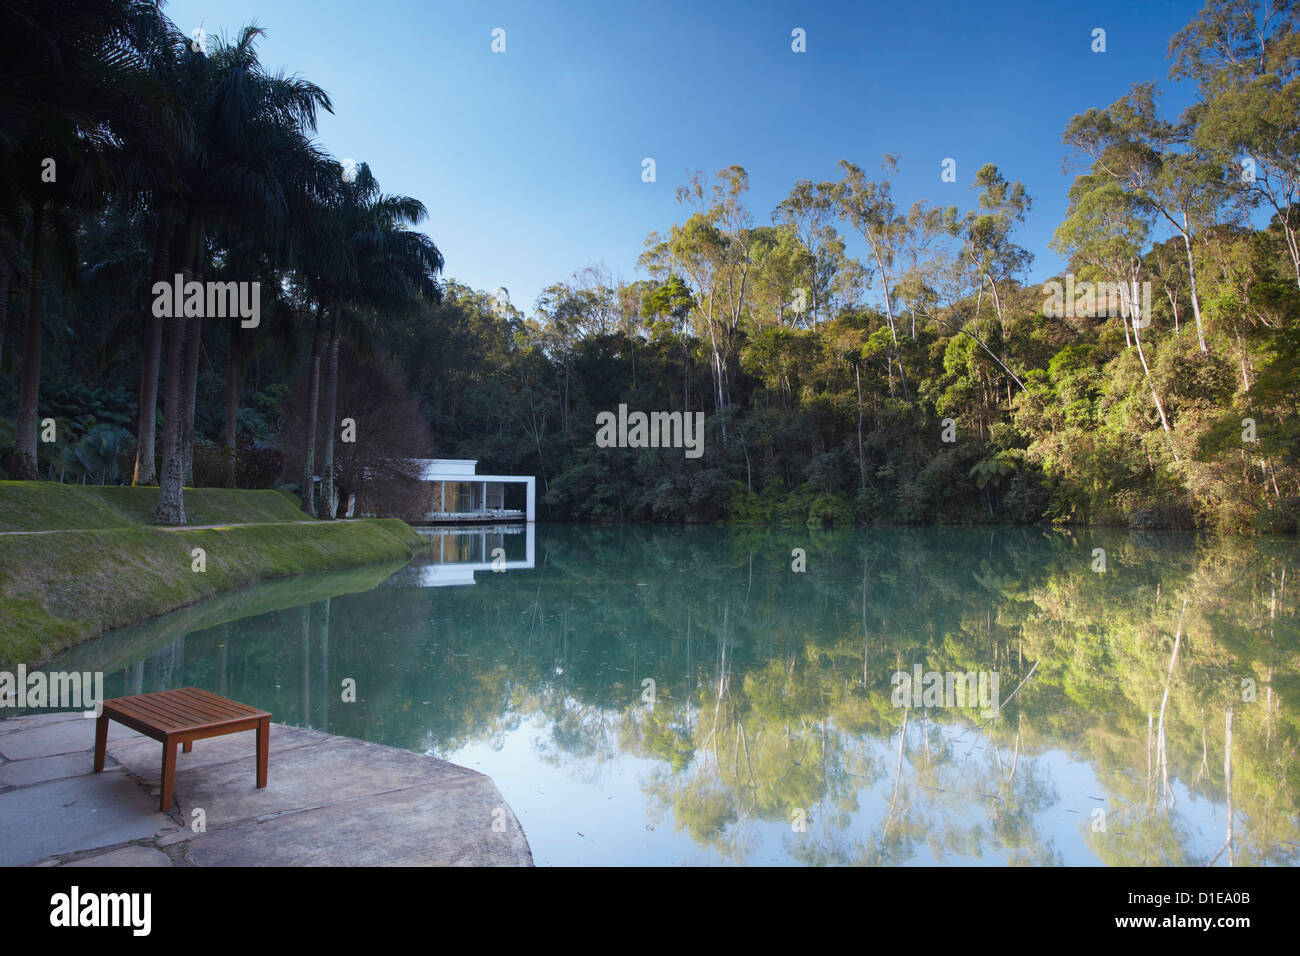 Galeria True Rouge on lake at Centro de Arte Contemporanea Inhotim, Brumadinho, Belo Horizonte, Minas Gerais, Brazil - Stock Image